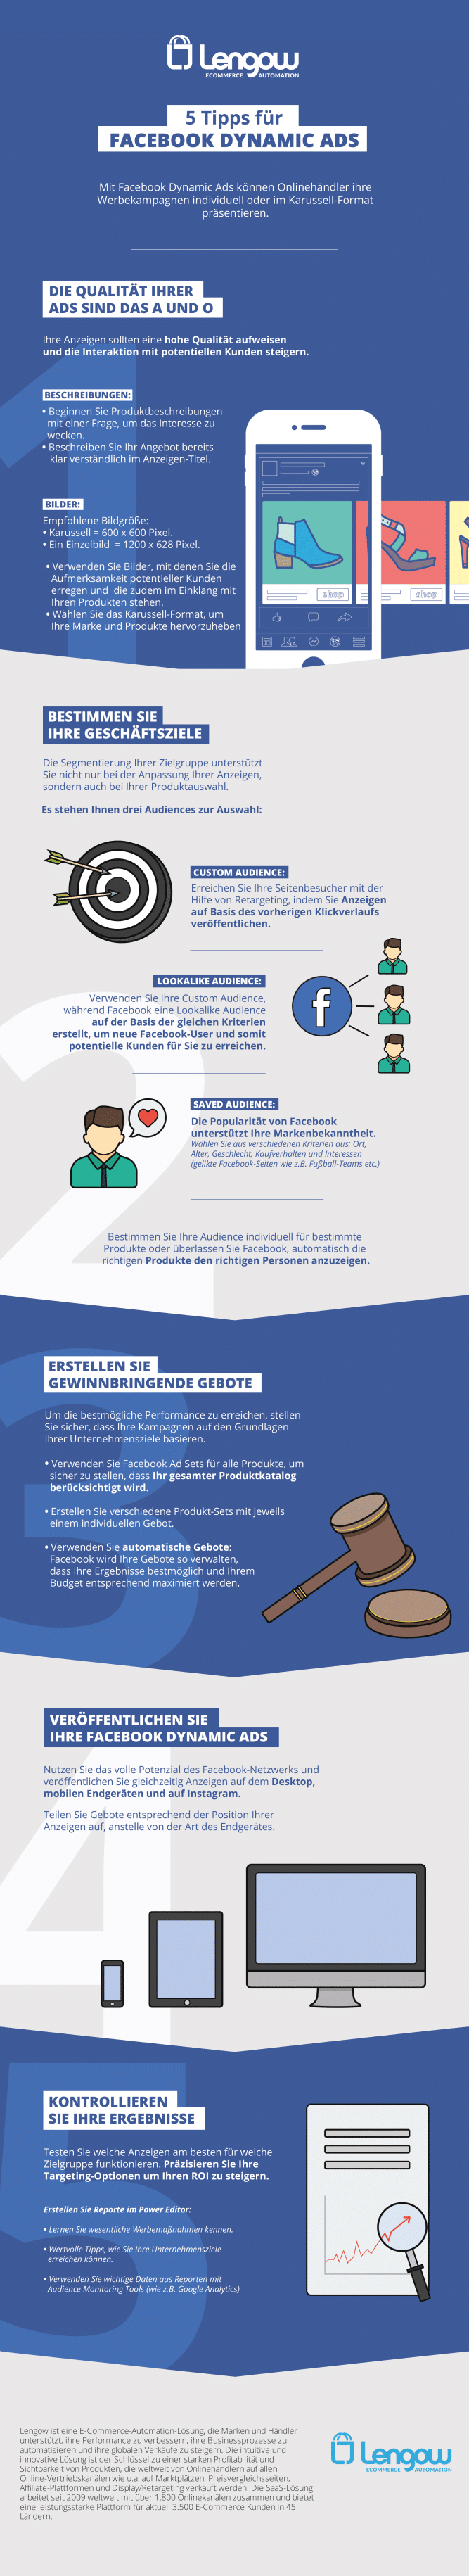 infographic_facebook_dynamic_ads_DE